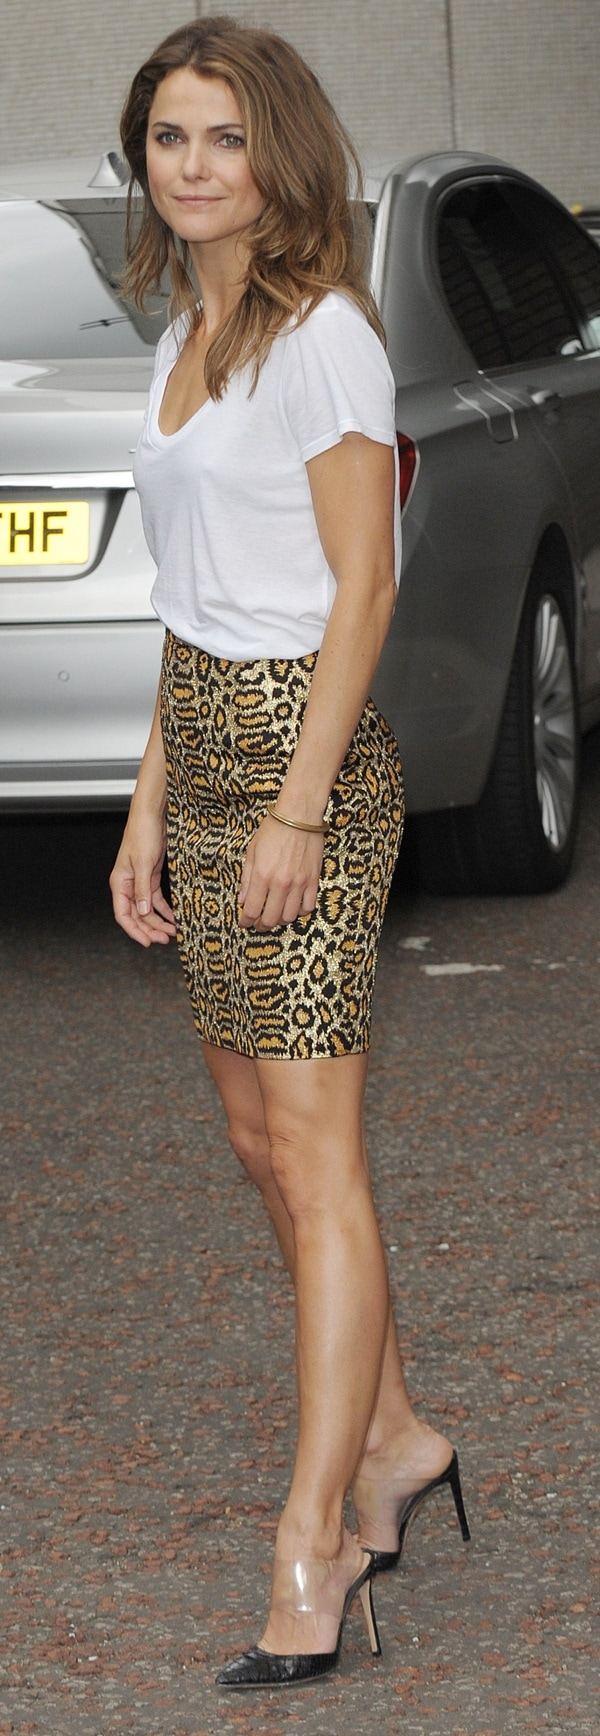 Keri Russell's daytime outfit consisted of a Saint Laurent leopard-print pencil skirt, a white tee, and Gianvito Rossi pumps